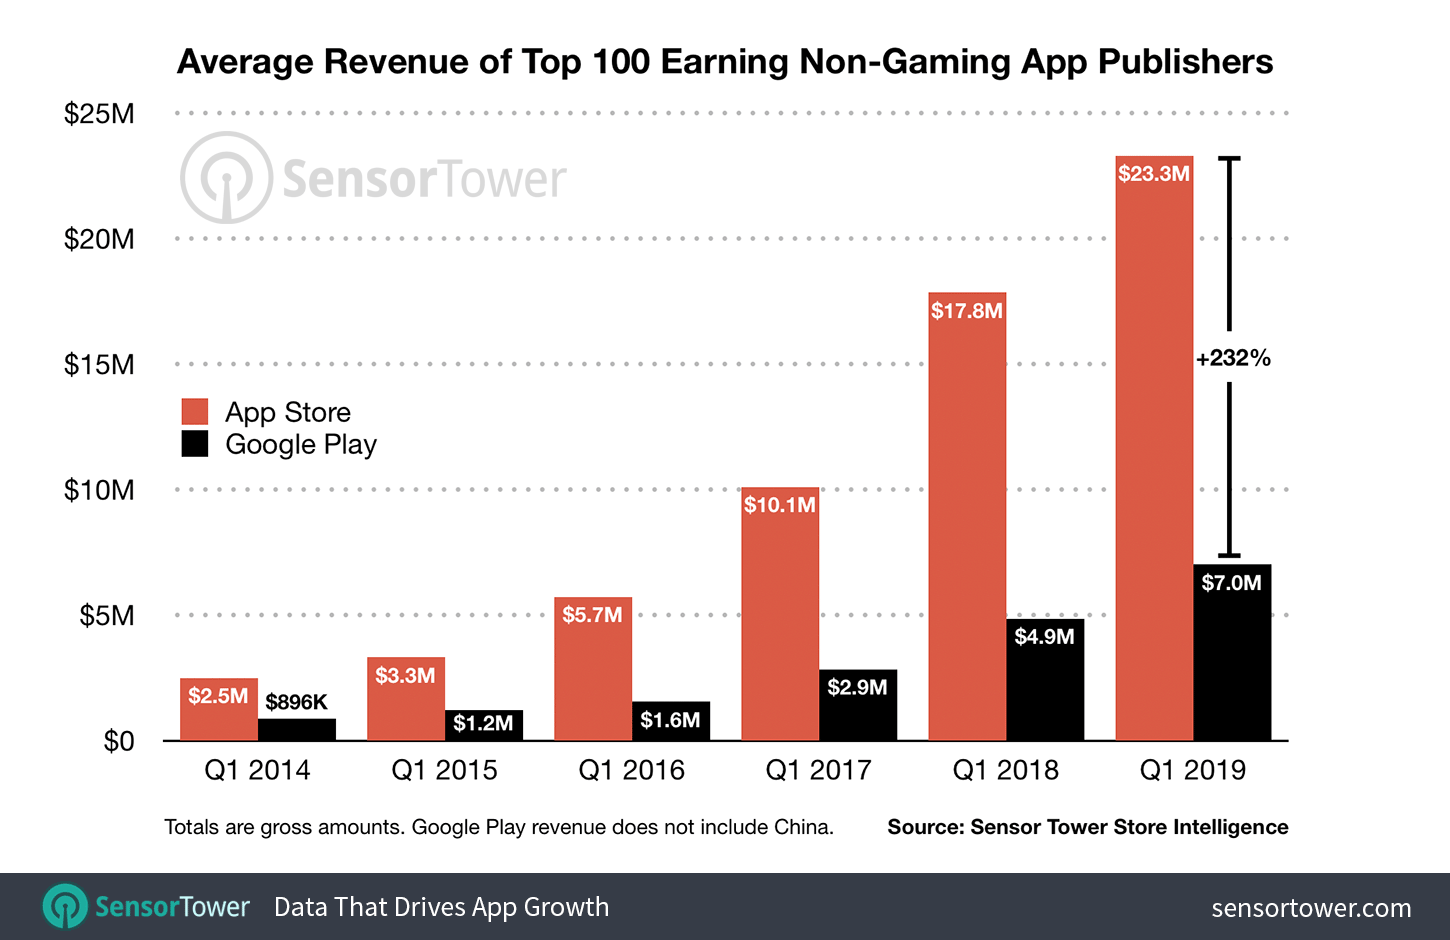 Average Q1 non-game app revenue for top-100 app publishers, 2014-2019